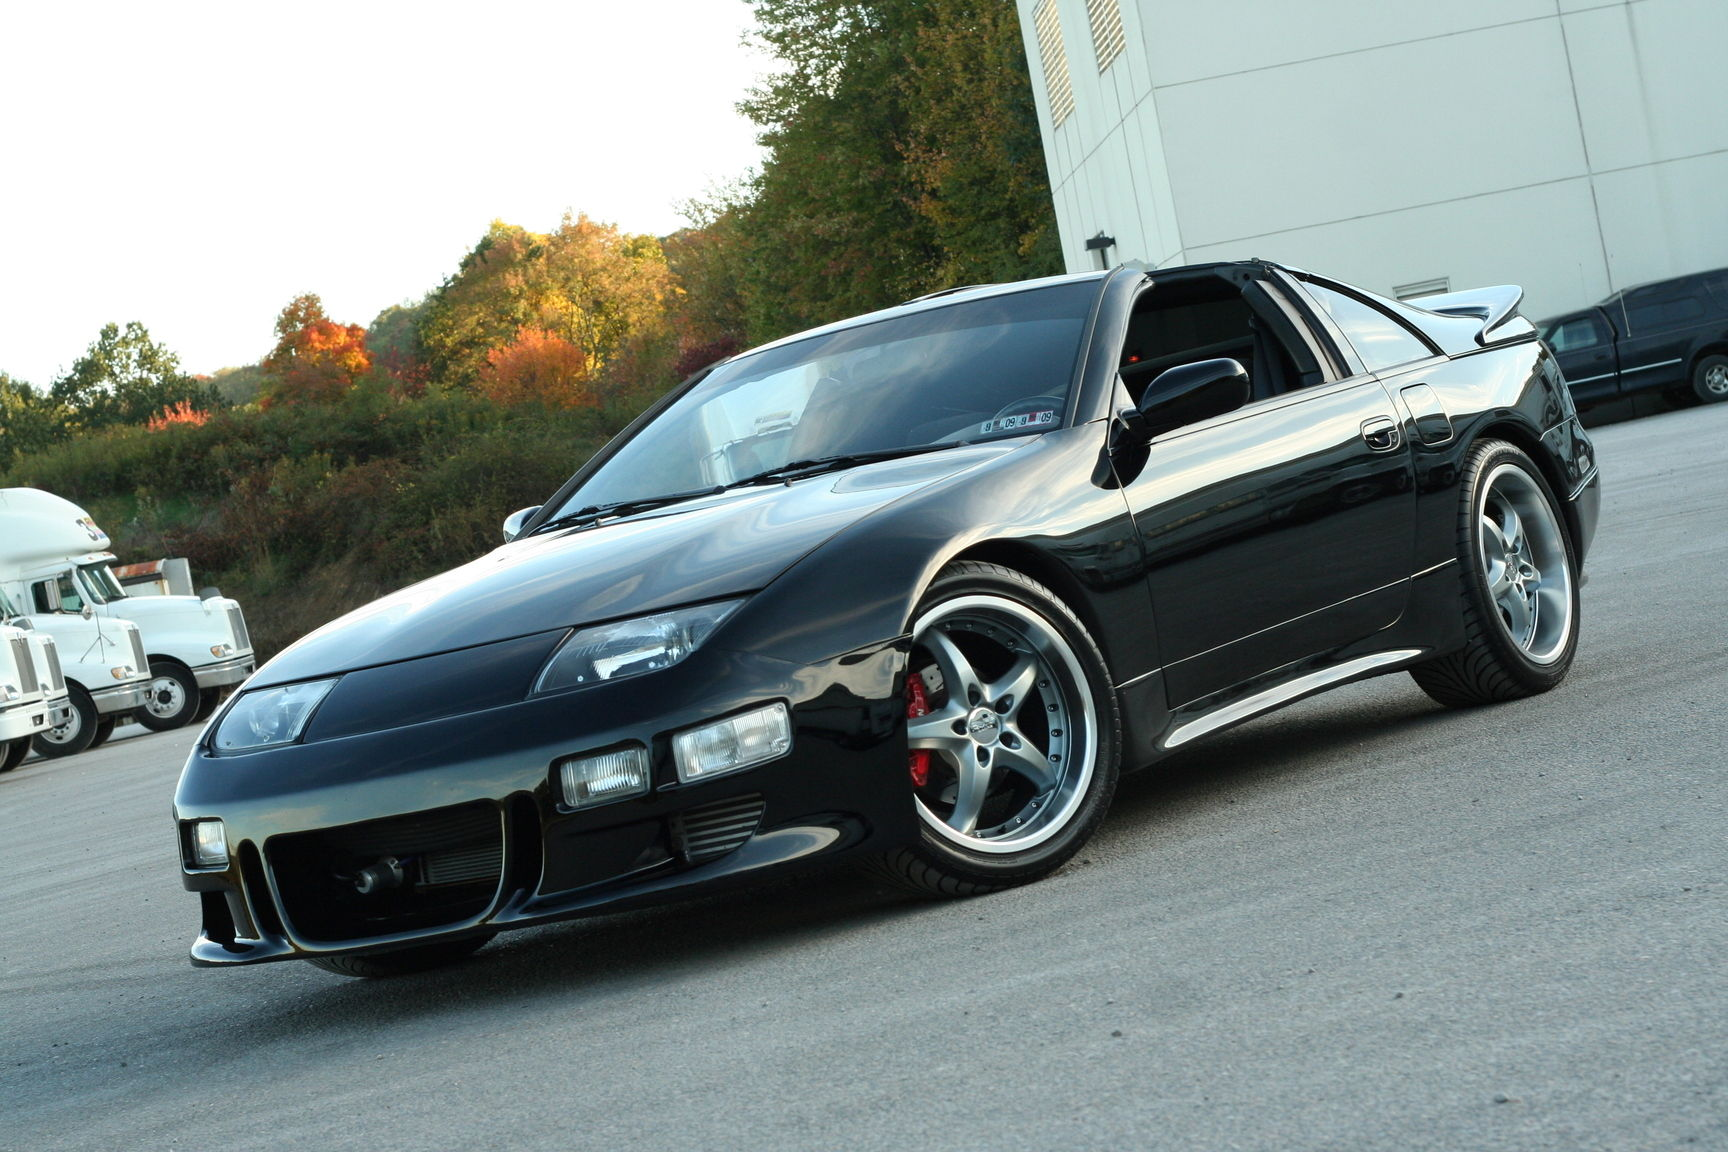 nissan 300zx twin turbo picture 12 reviews news specs buy car. Black Bedroom Furniture Sets. Home Design Ideas